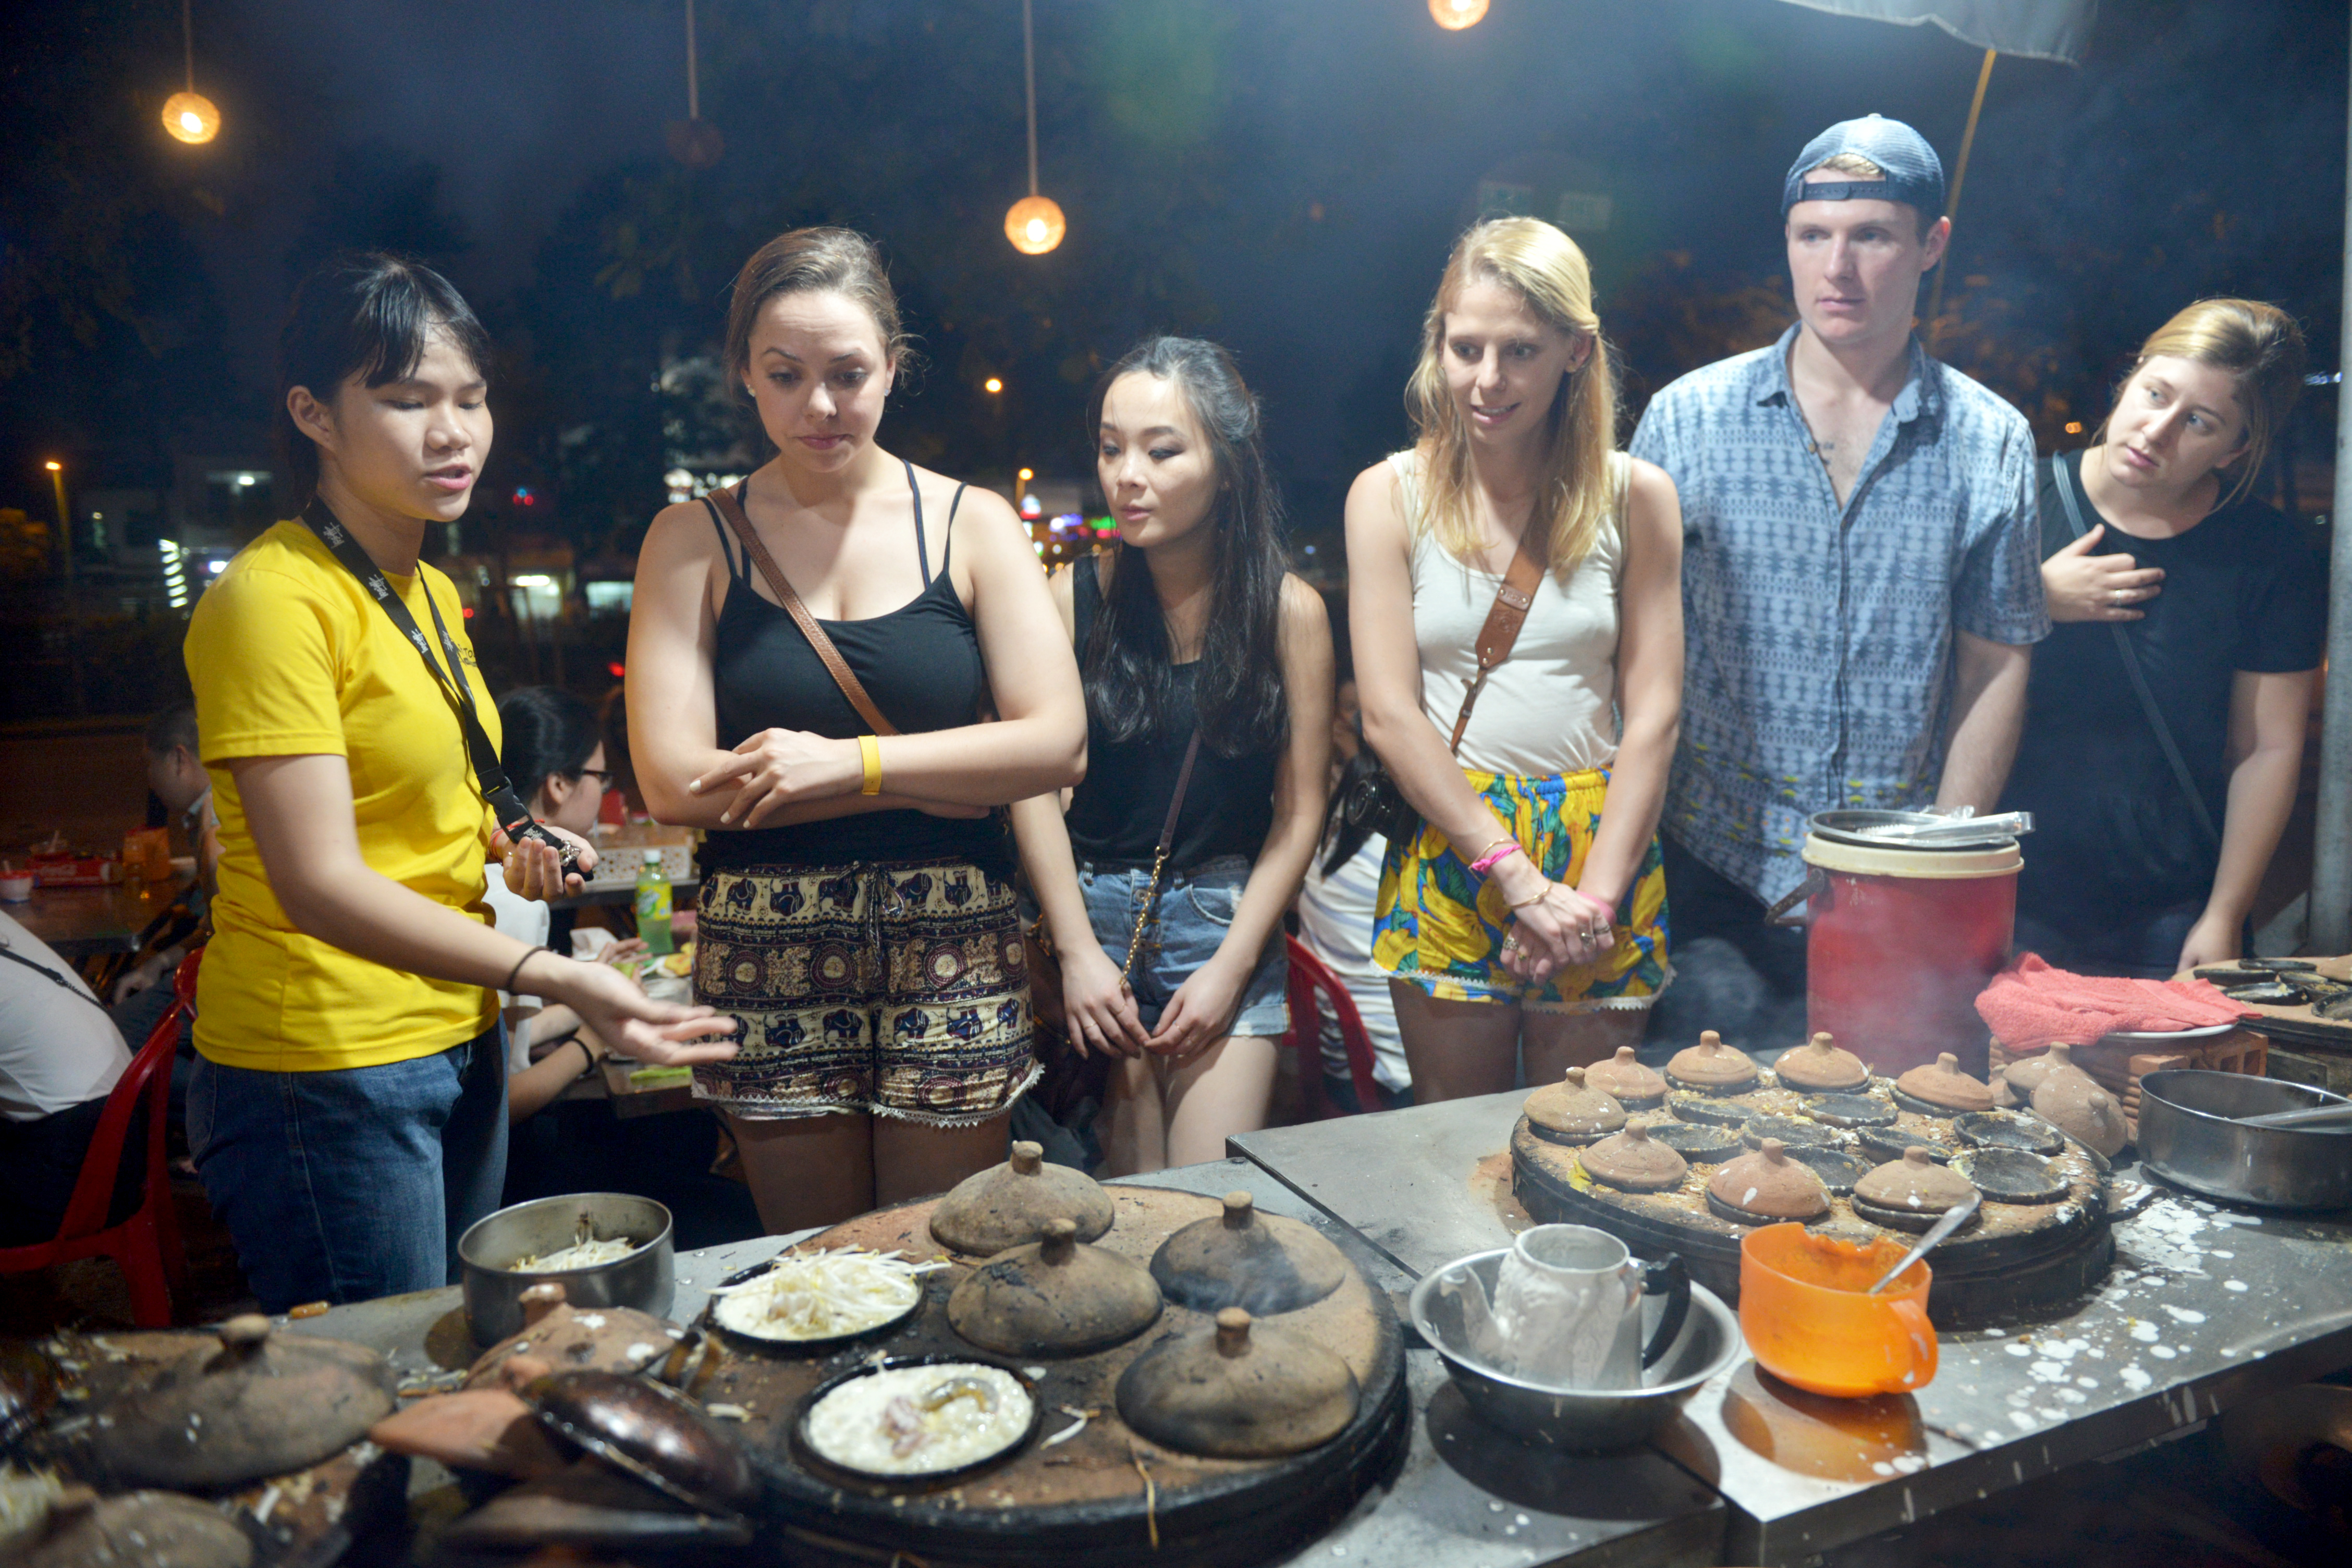 Madeline Dickson (L, 2nd) and her friends watch the process of making Vietnamese bánh xèo at a small restaurant in District 3, Ho Chi Minh City on December 29, 2017. Photo: Tuoi Tre